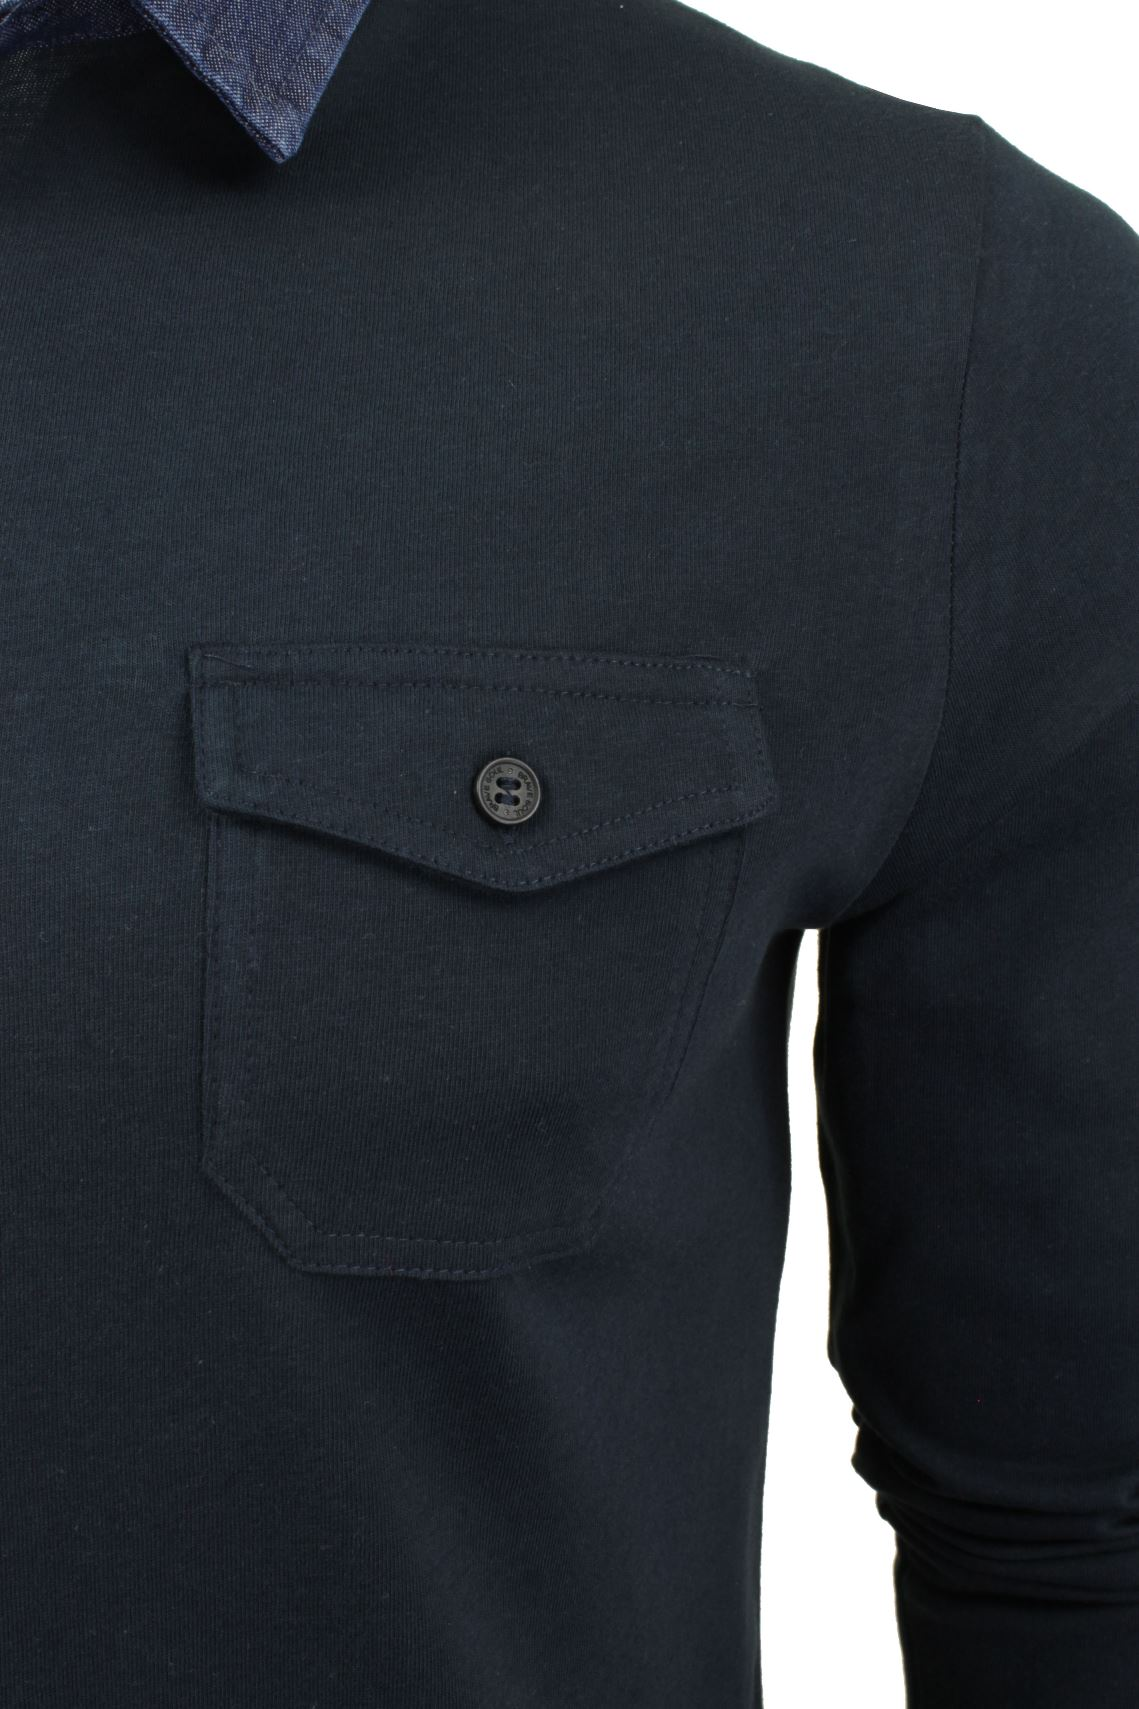 Mens-Long-Sleeved-Polo-T-Shirt-by-Brave-Soul-with-Denim-Collar thumbnail 4